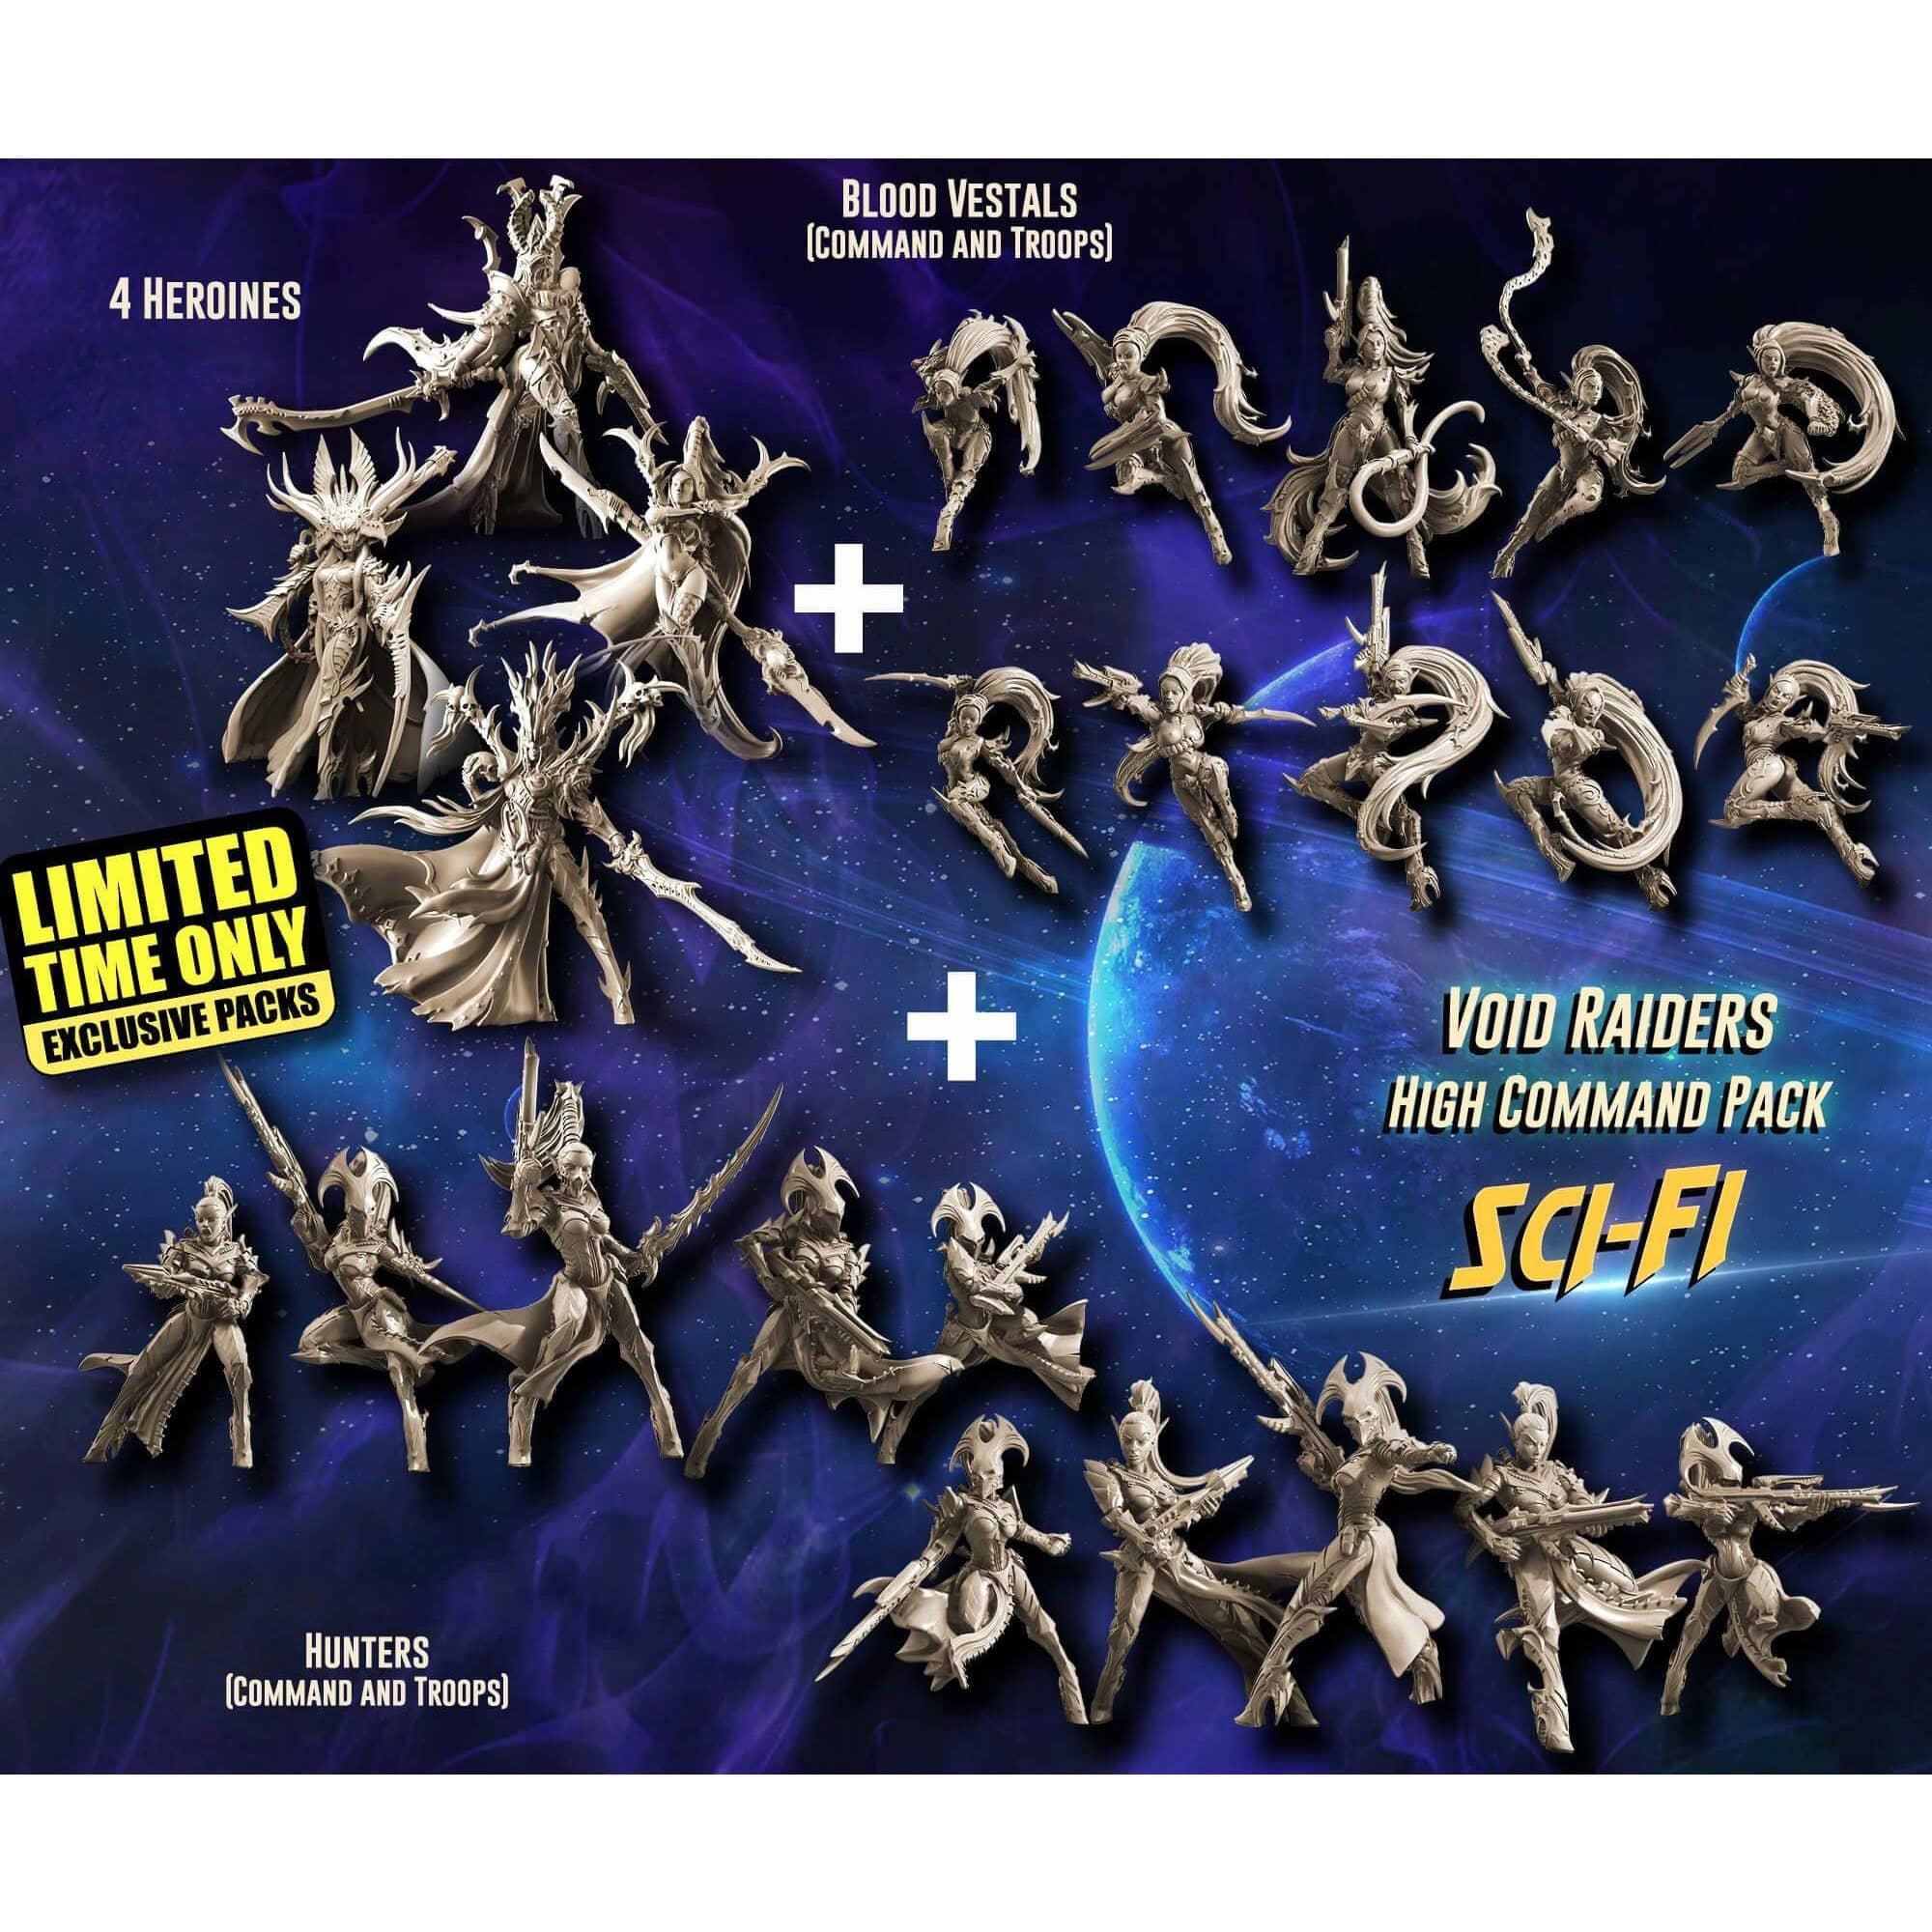 EXCLUSIVE Void Raiders High Command Pack (VE - SF) - Raging Heroes